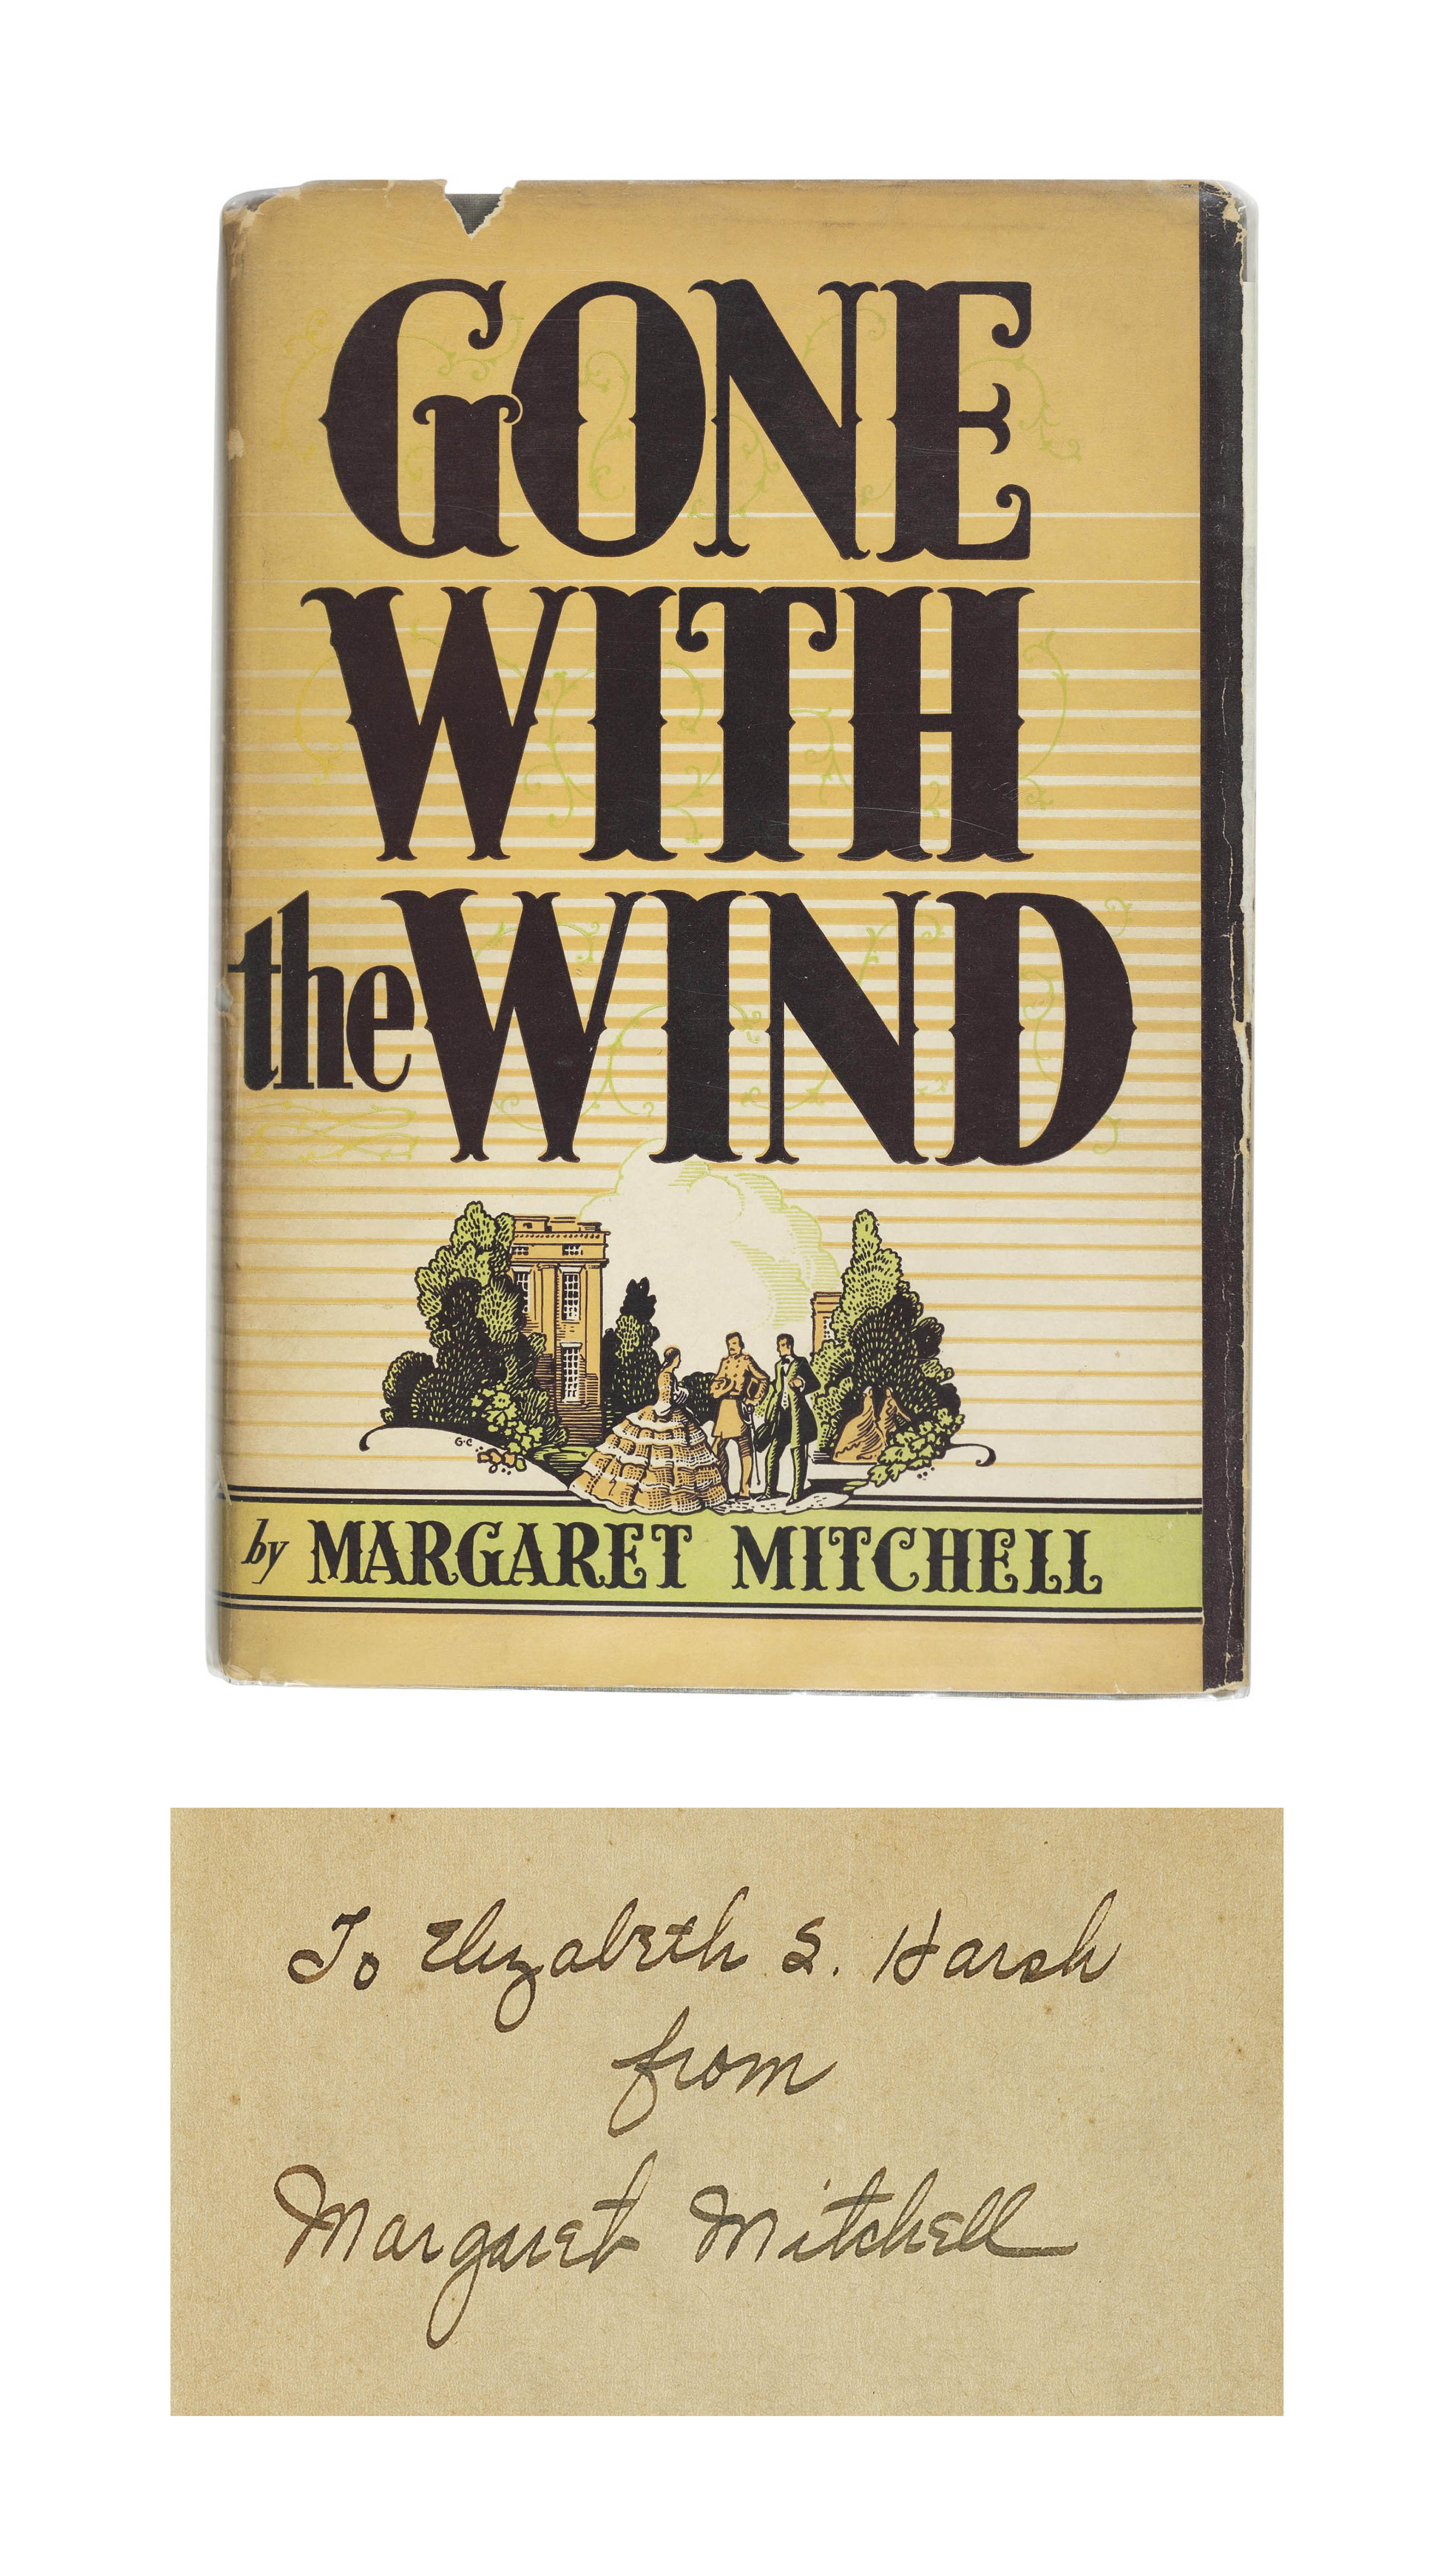 MITCHELL, Margaret (1900-49). Gone with the Wind. New York: MacMillan, 1936.